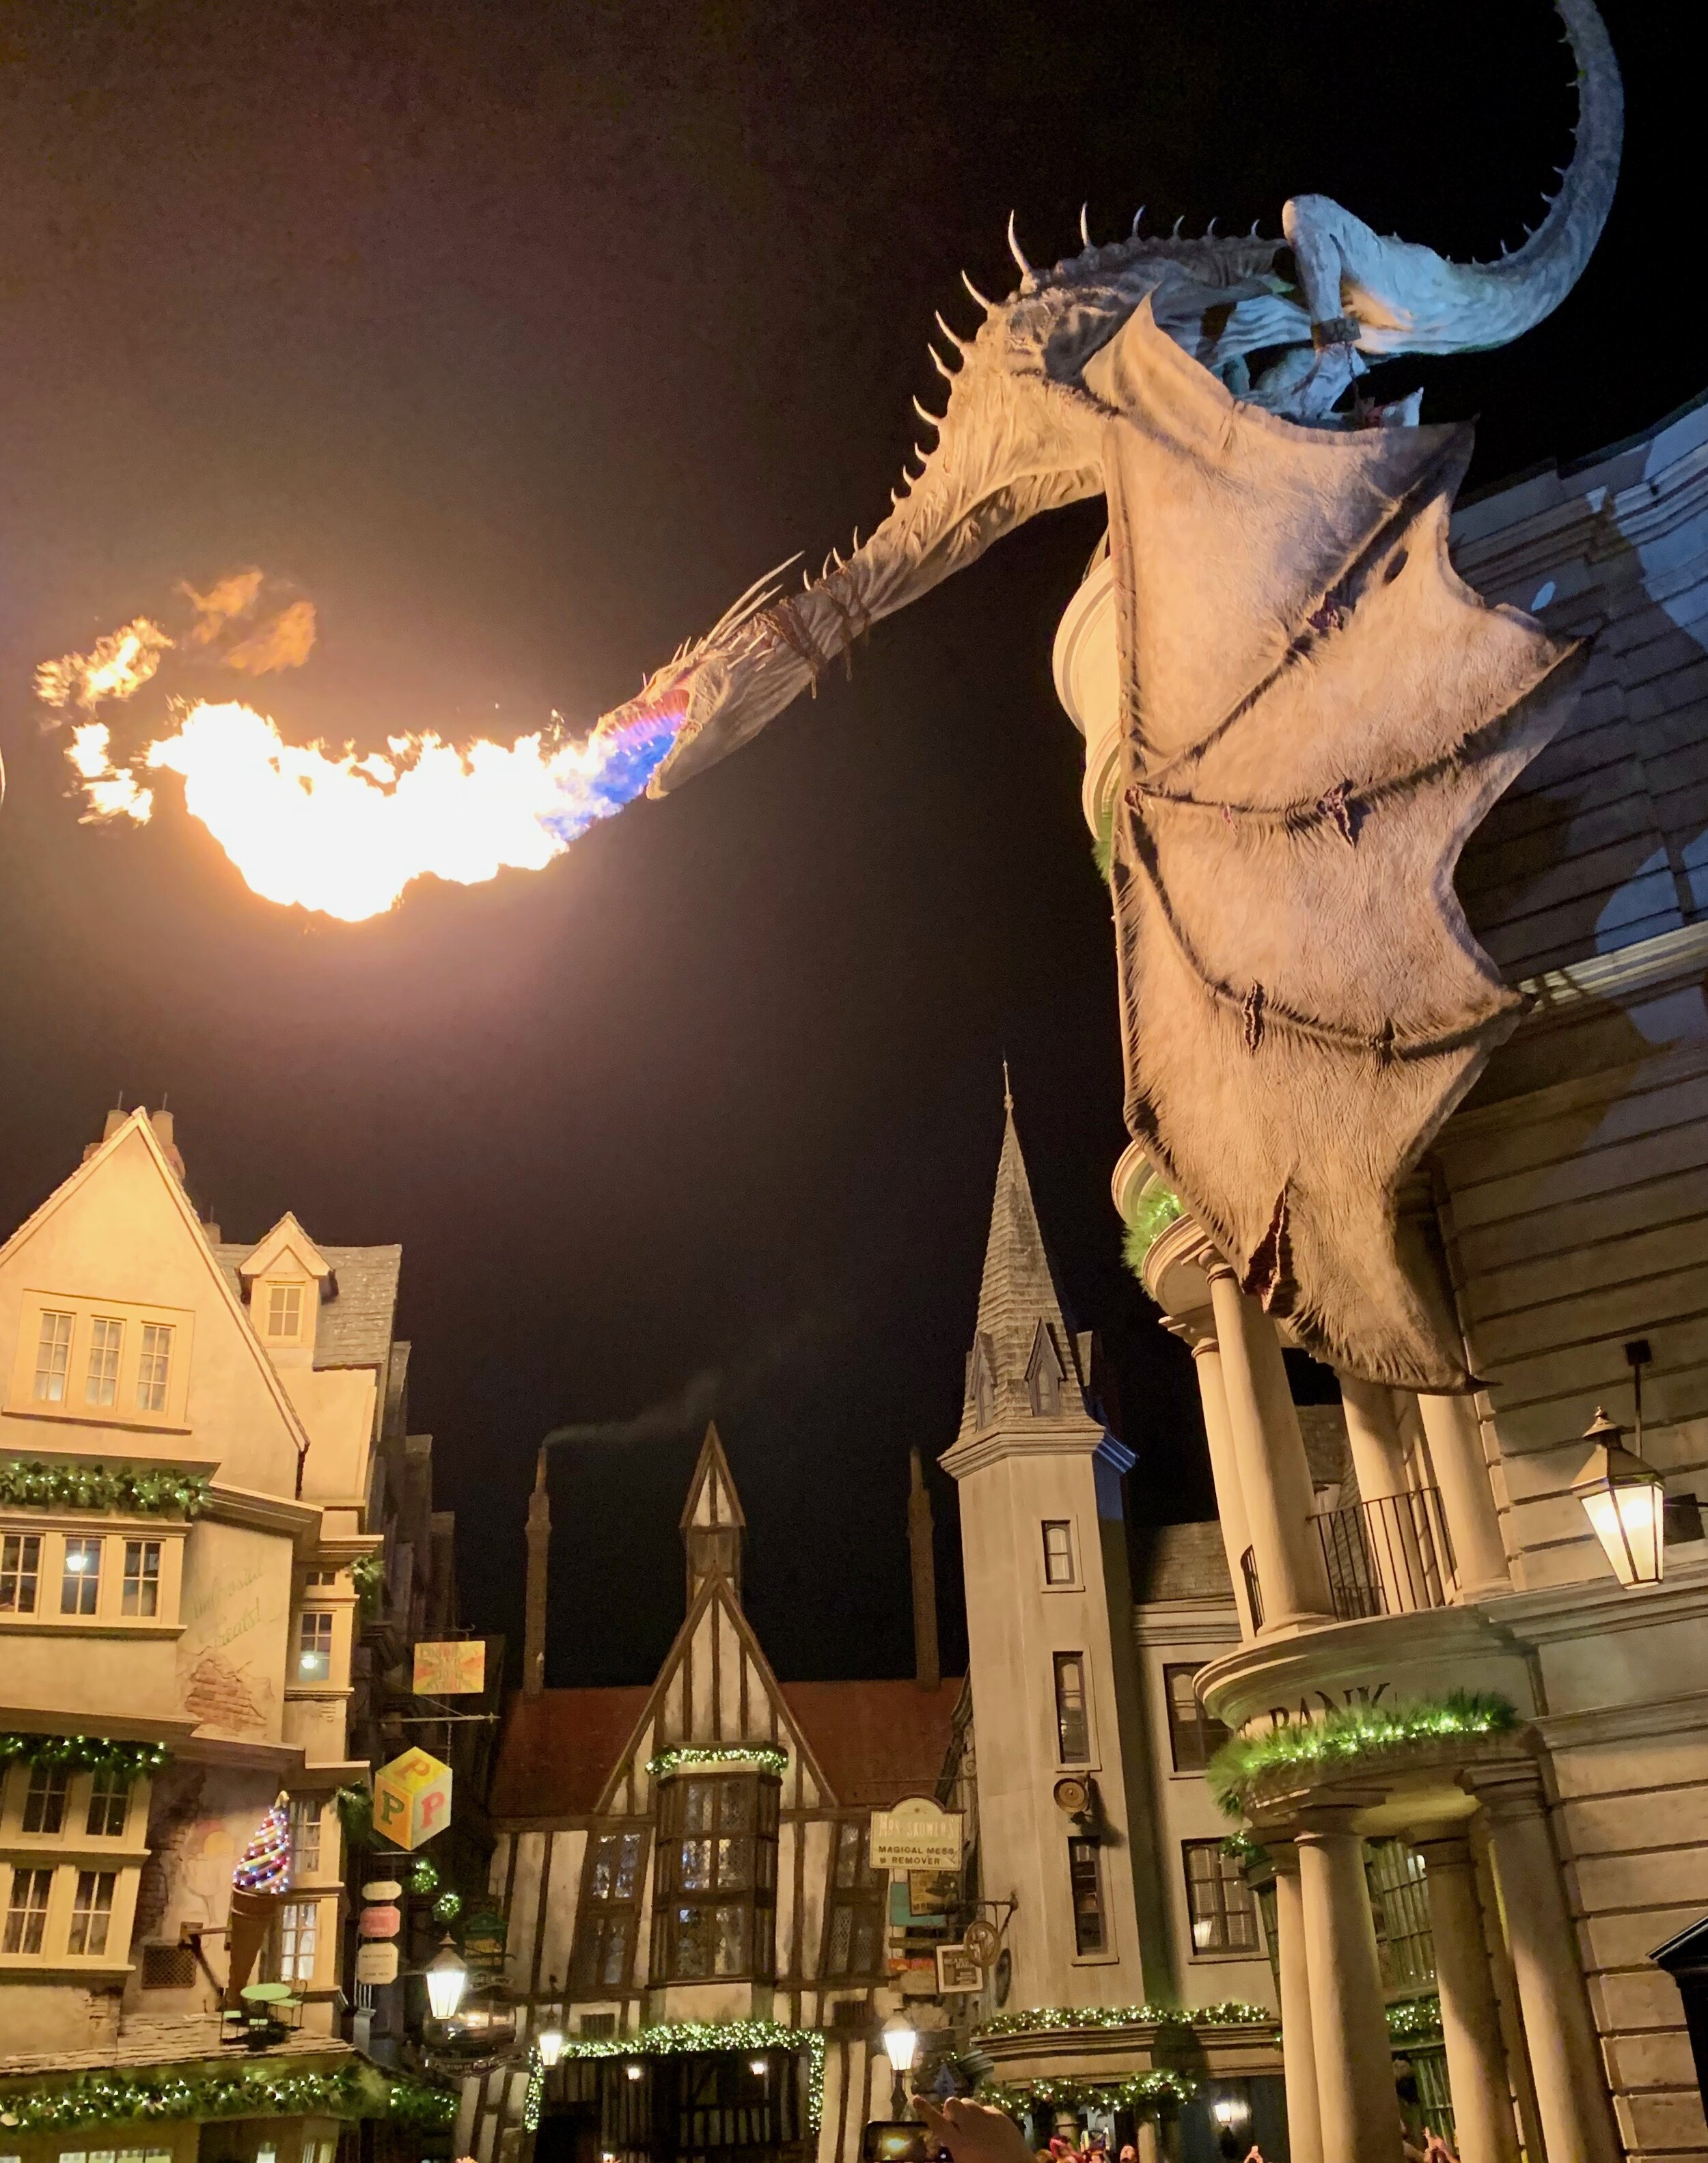 The dragon breathes fire approximately every 15 minutes